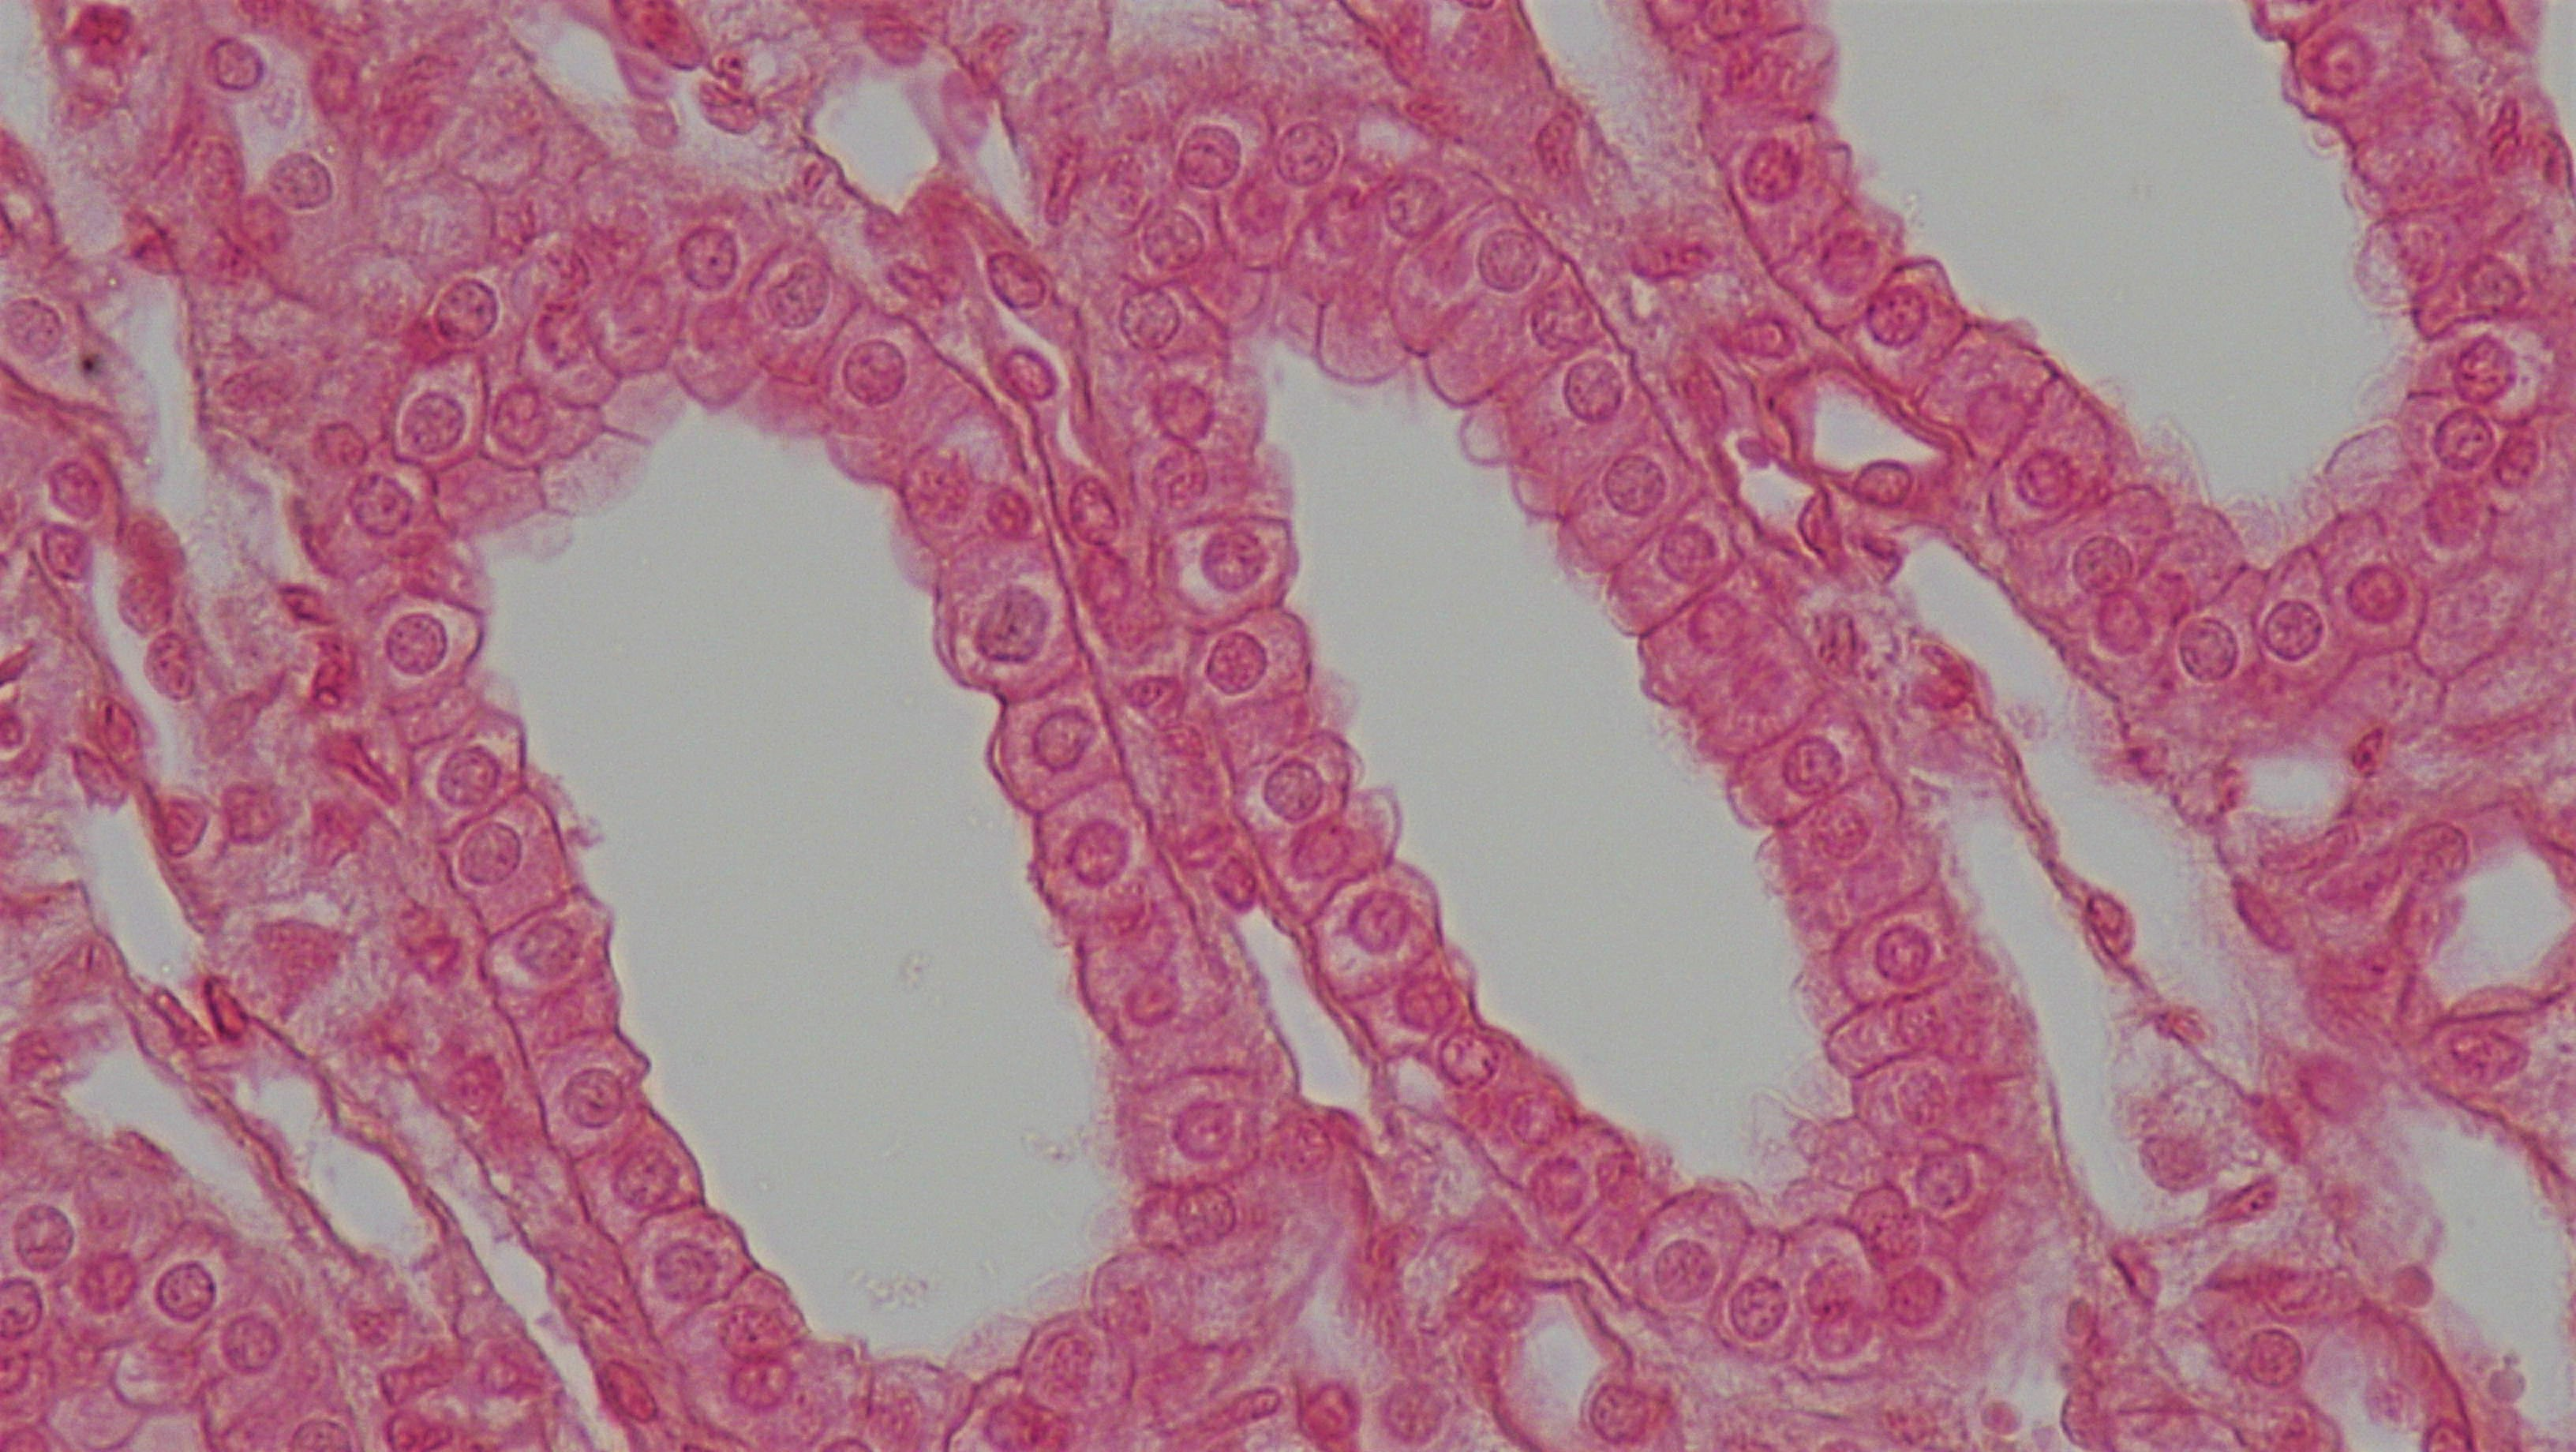 Difference Between Simple And Compound Epithelium